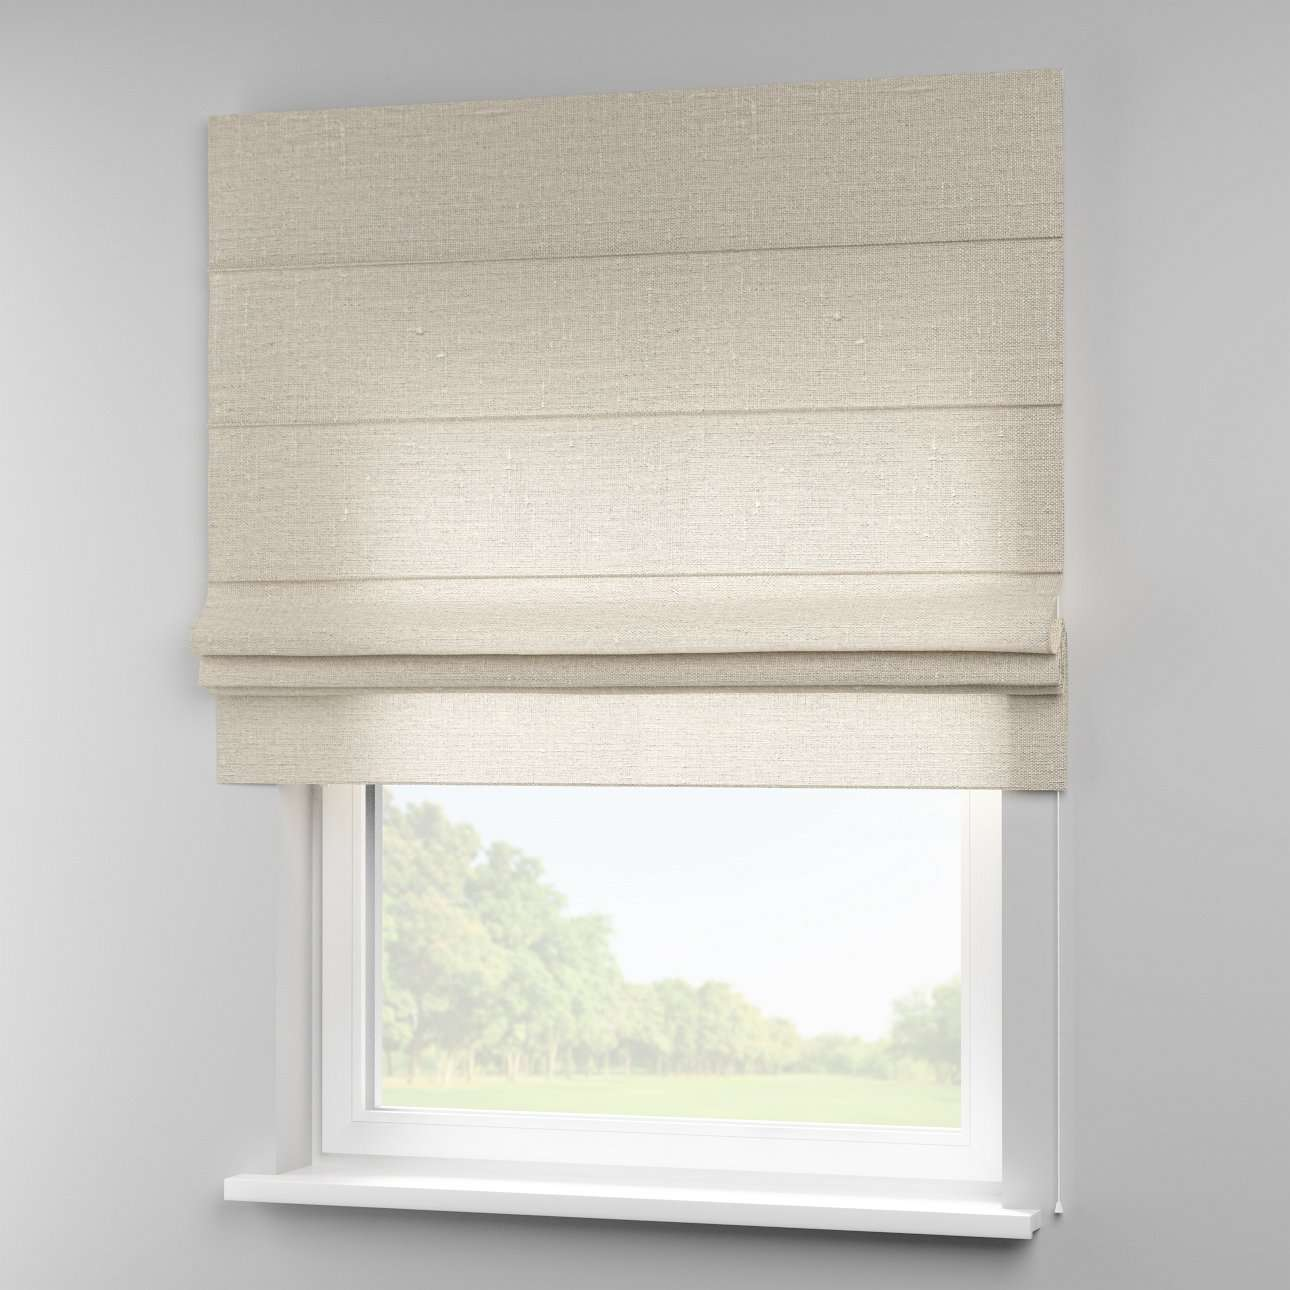 Padva roman blind  in collection Linen, fabric: 392-05